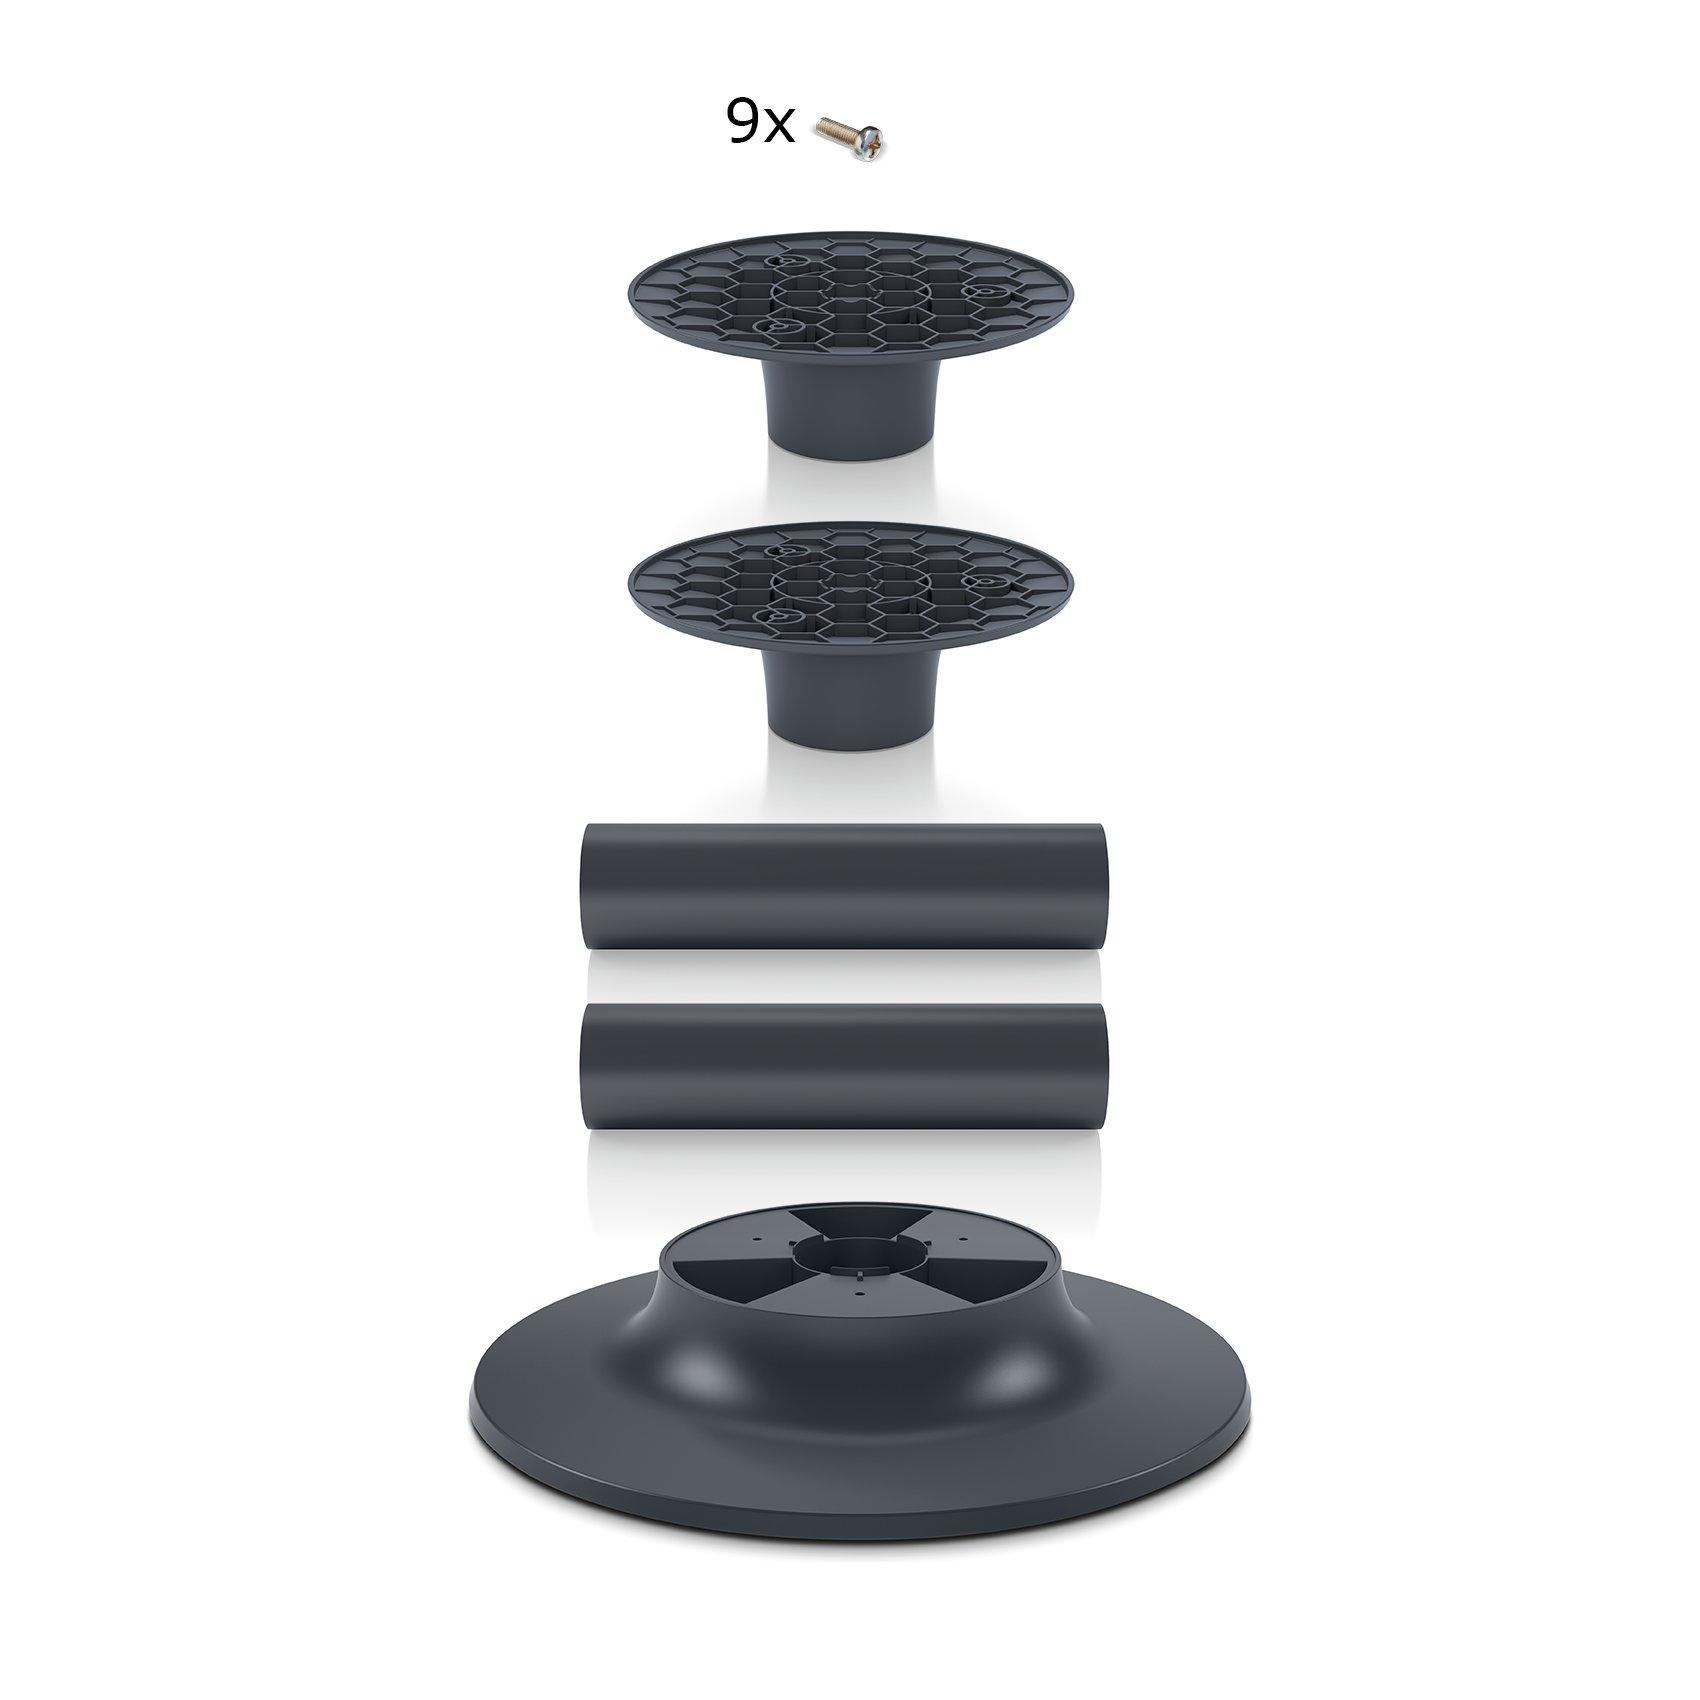 Expansion set for building a stack consisting of 3 CASCADA slate